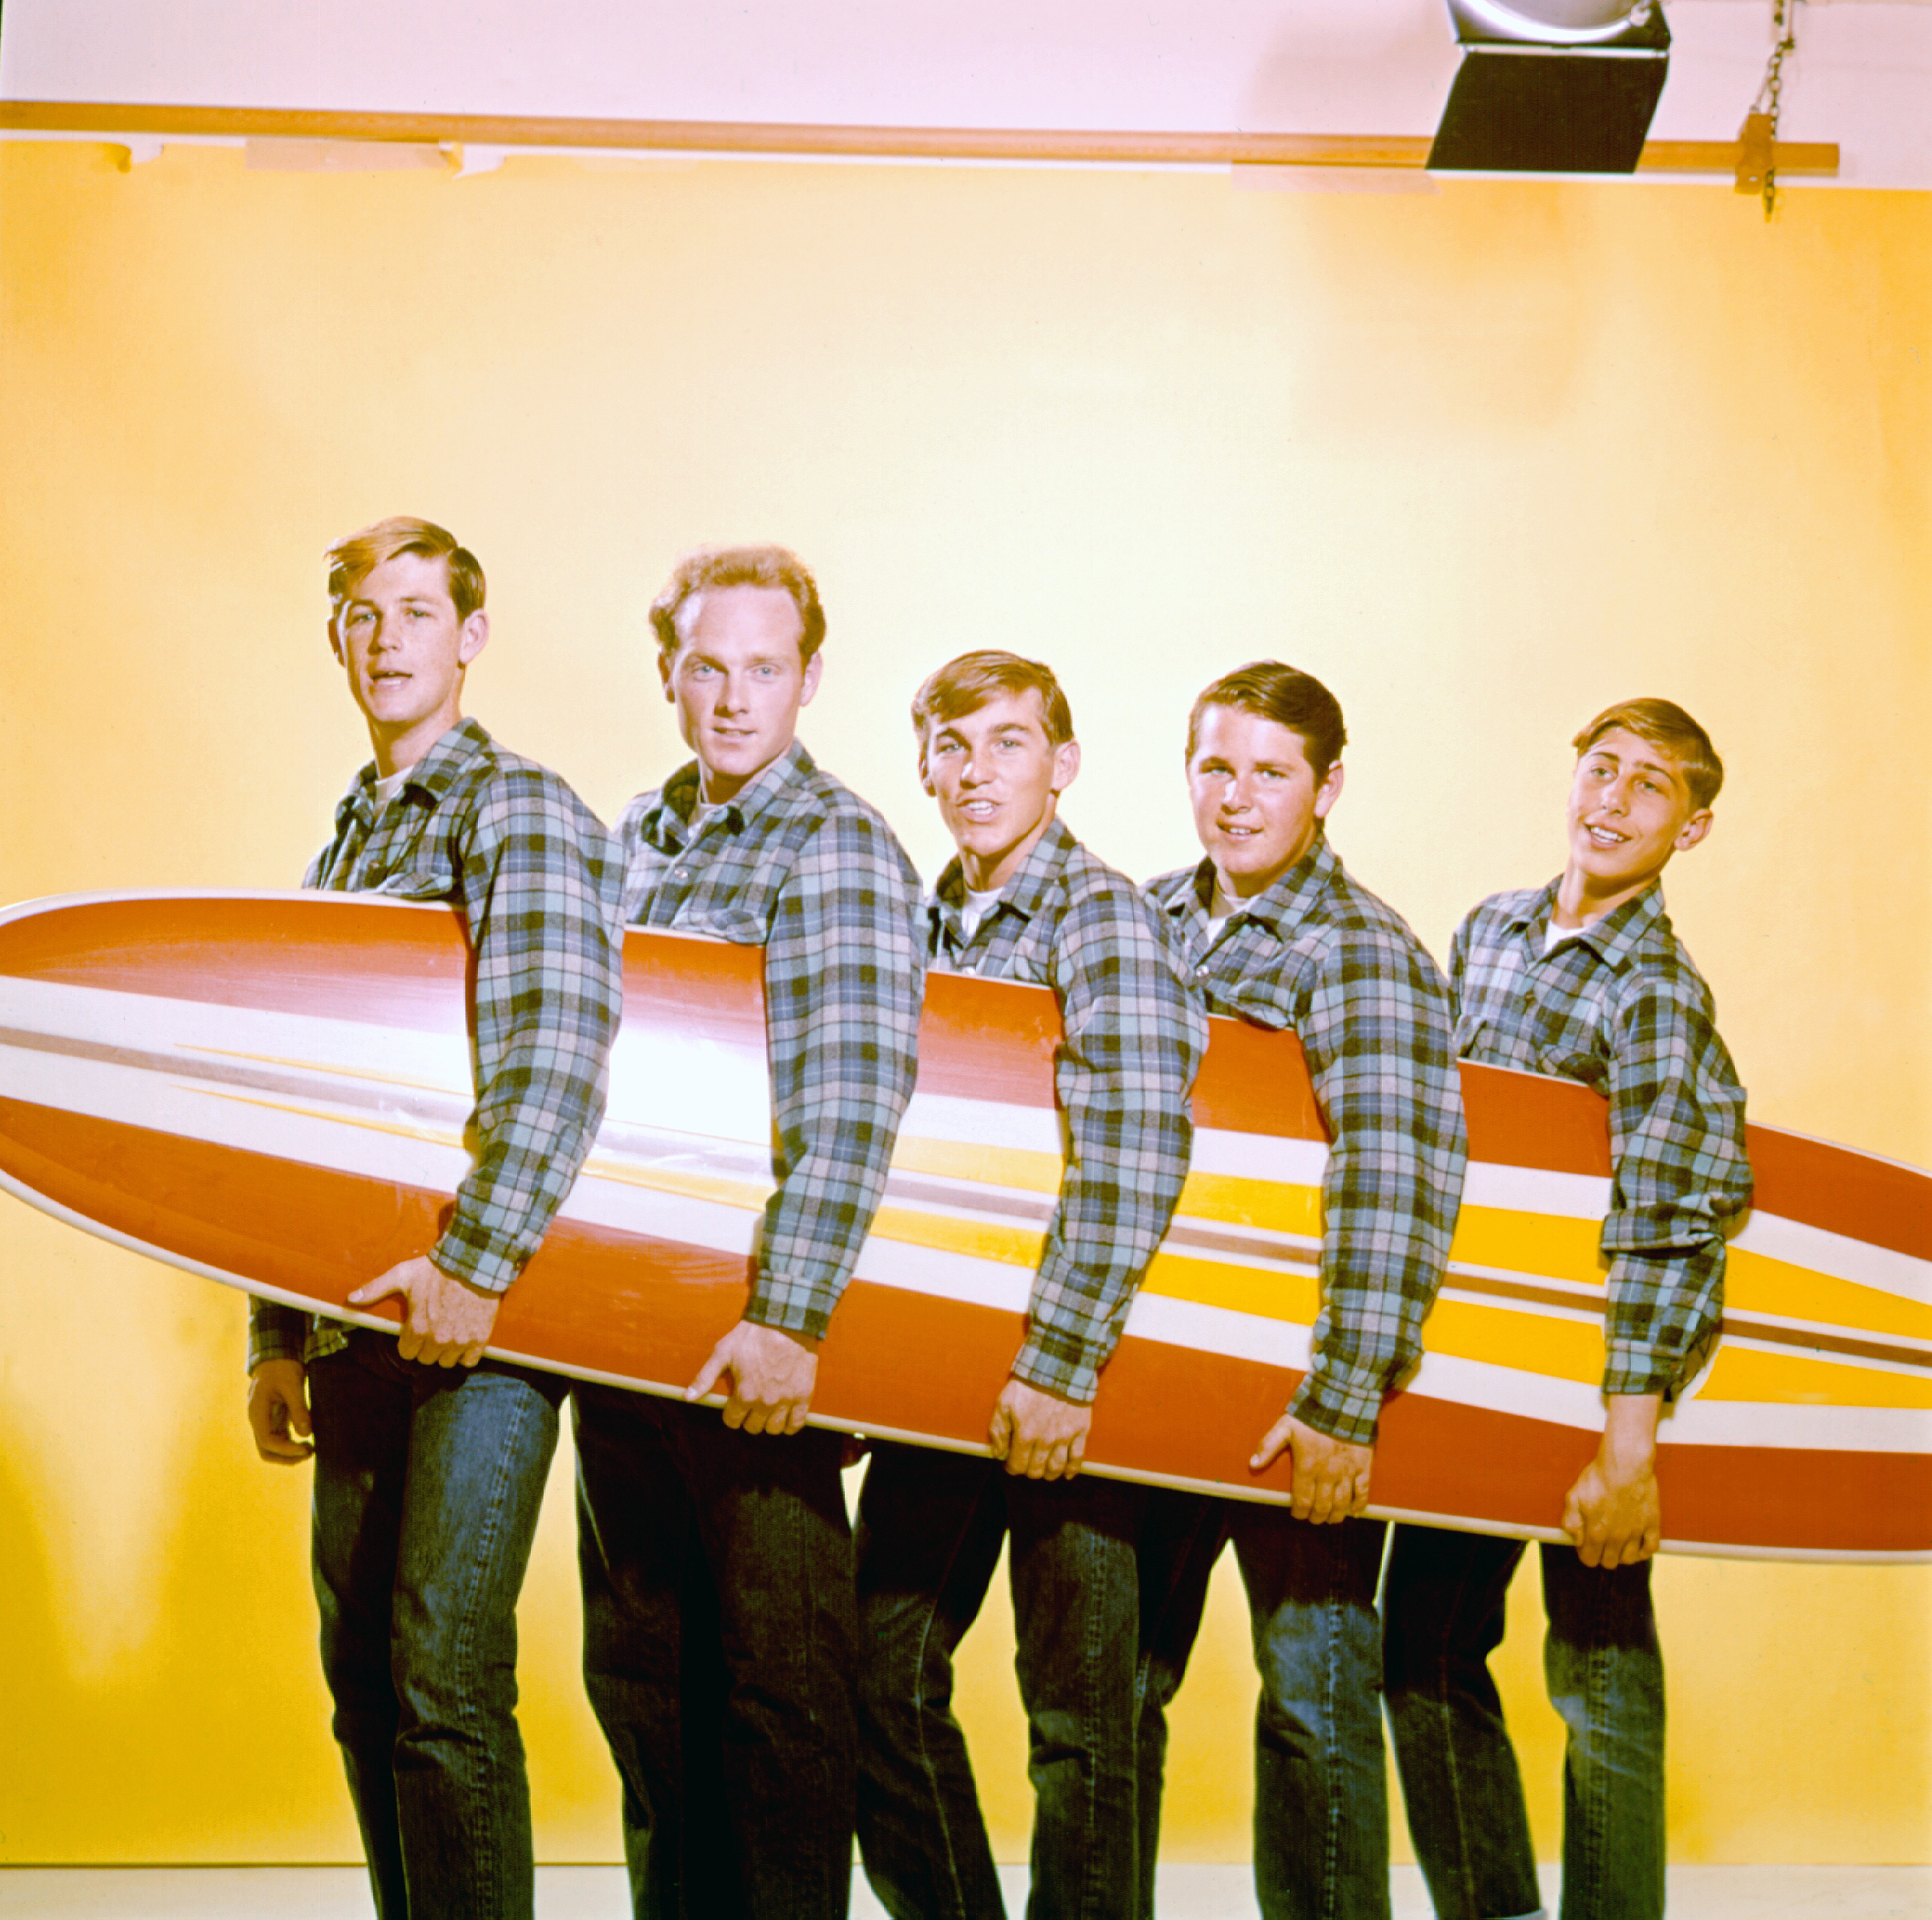 Rock and roll band  The Beach Boys  pose for a portrait with a surfboard in August 1962 in Los Angeles. L—R: Brian Wilson, Mike Love,  Dennis Wilson, Carl Wilson, David Marks.